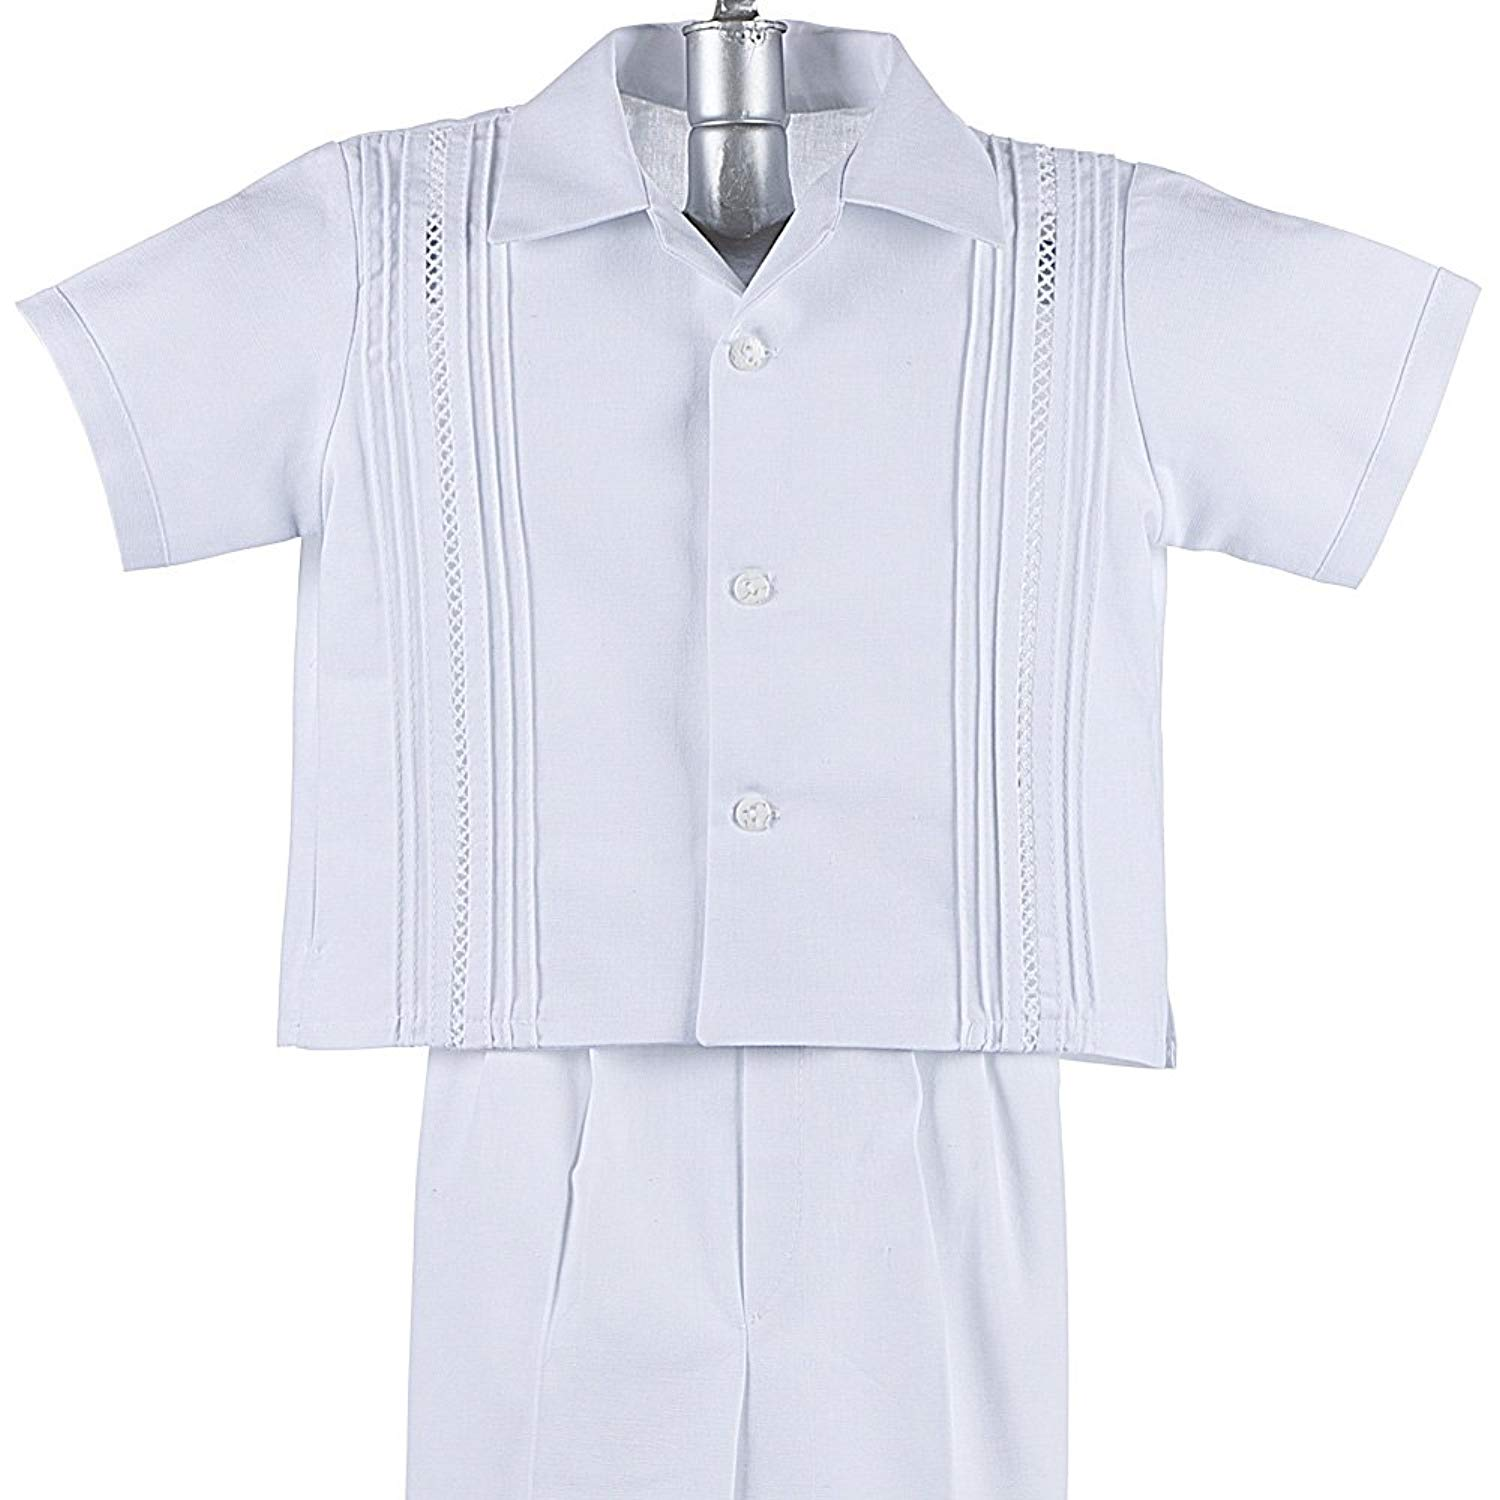 eaf75ae755dd0 Cheap Kids Guayaberas, find Kids Guayaberas deals on line at Alibaba.com